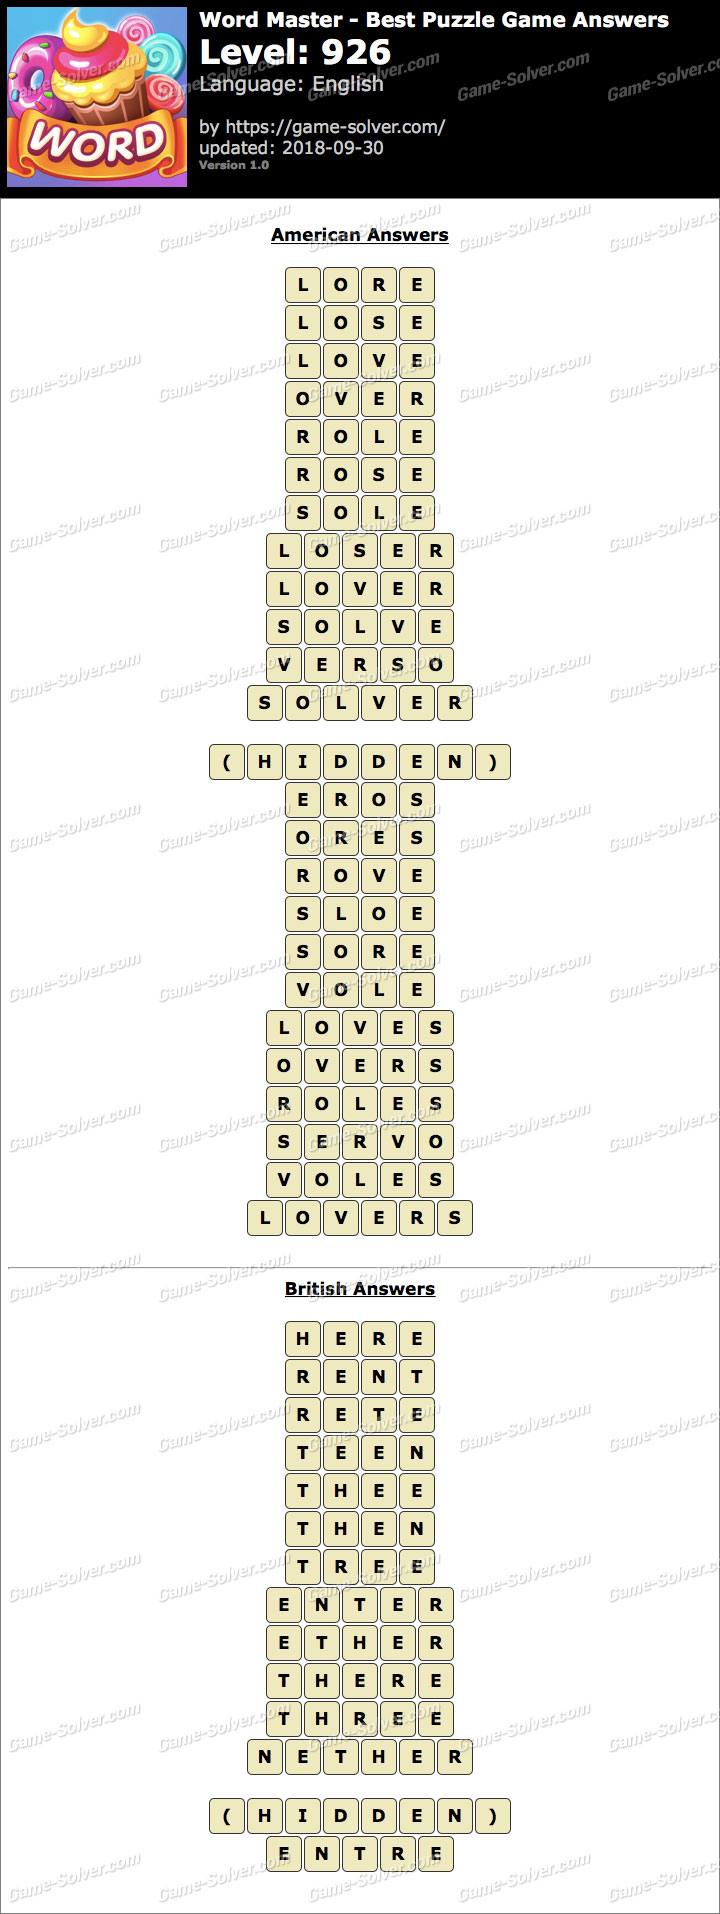 Word Master-Best Puzzle Game Level 926 Answers